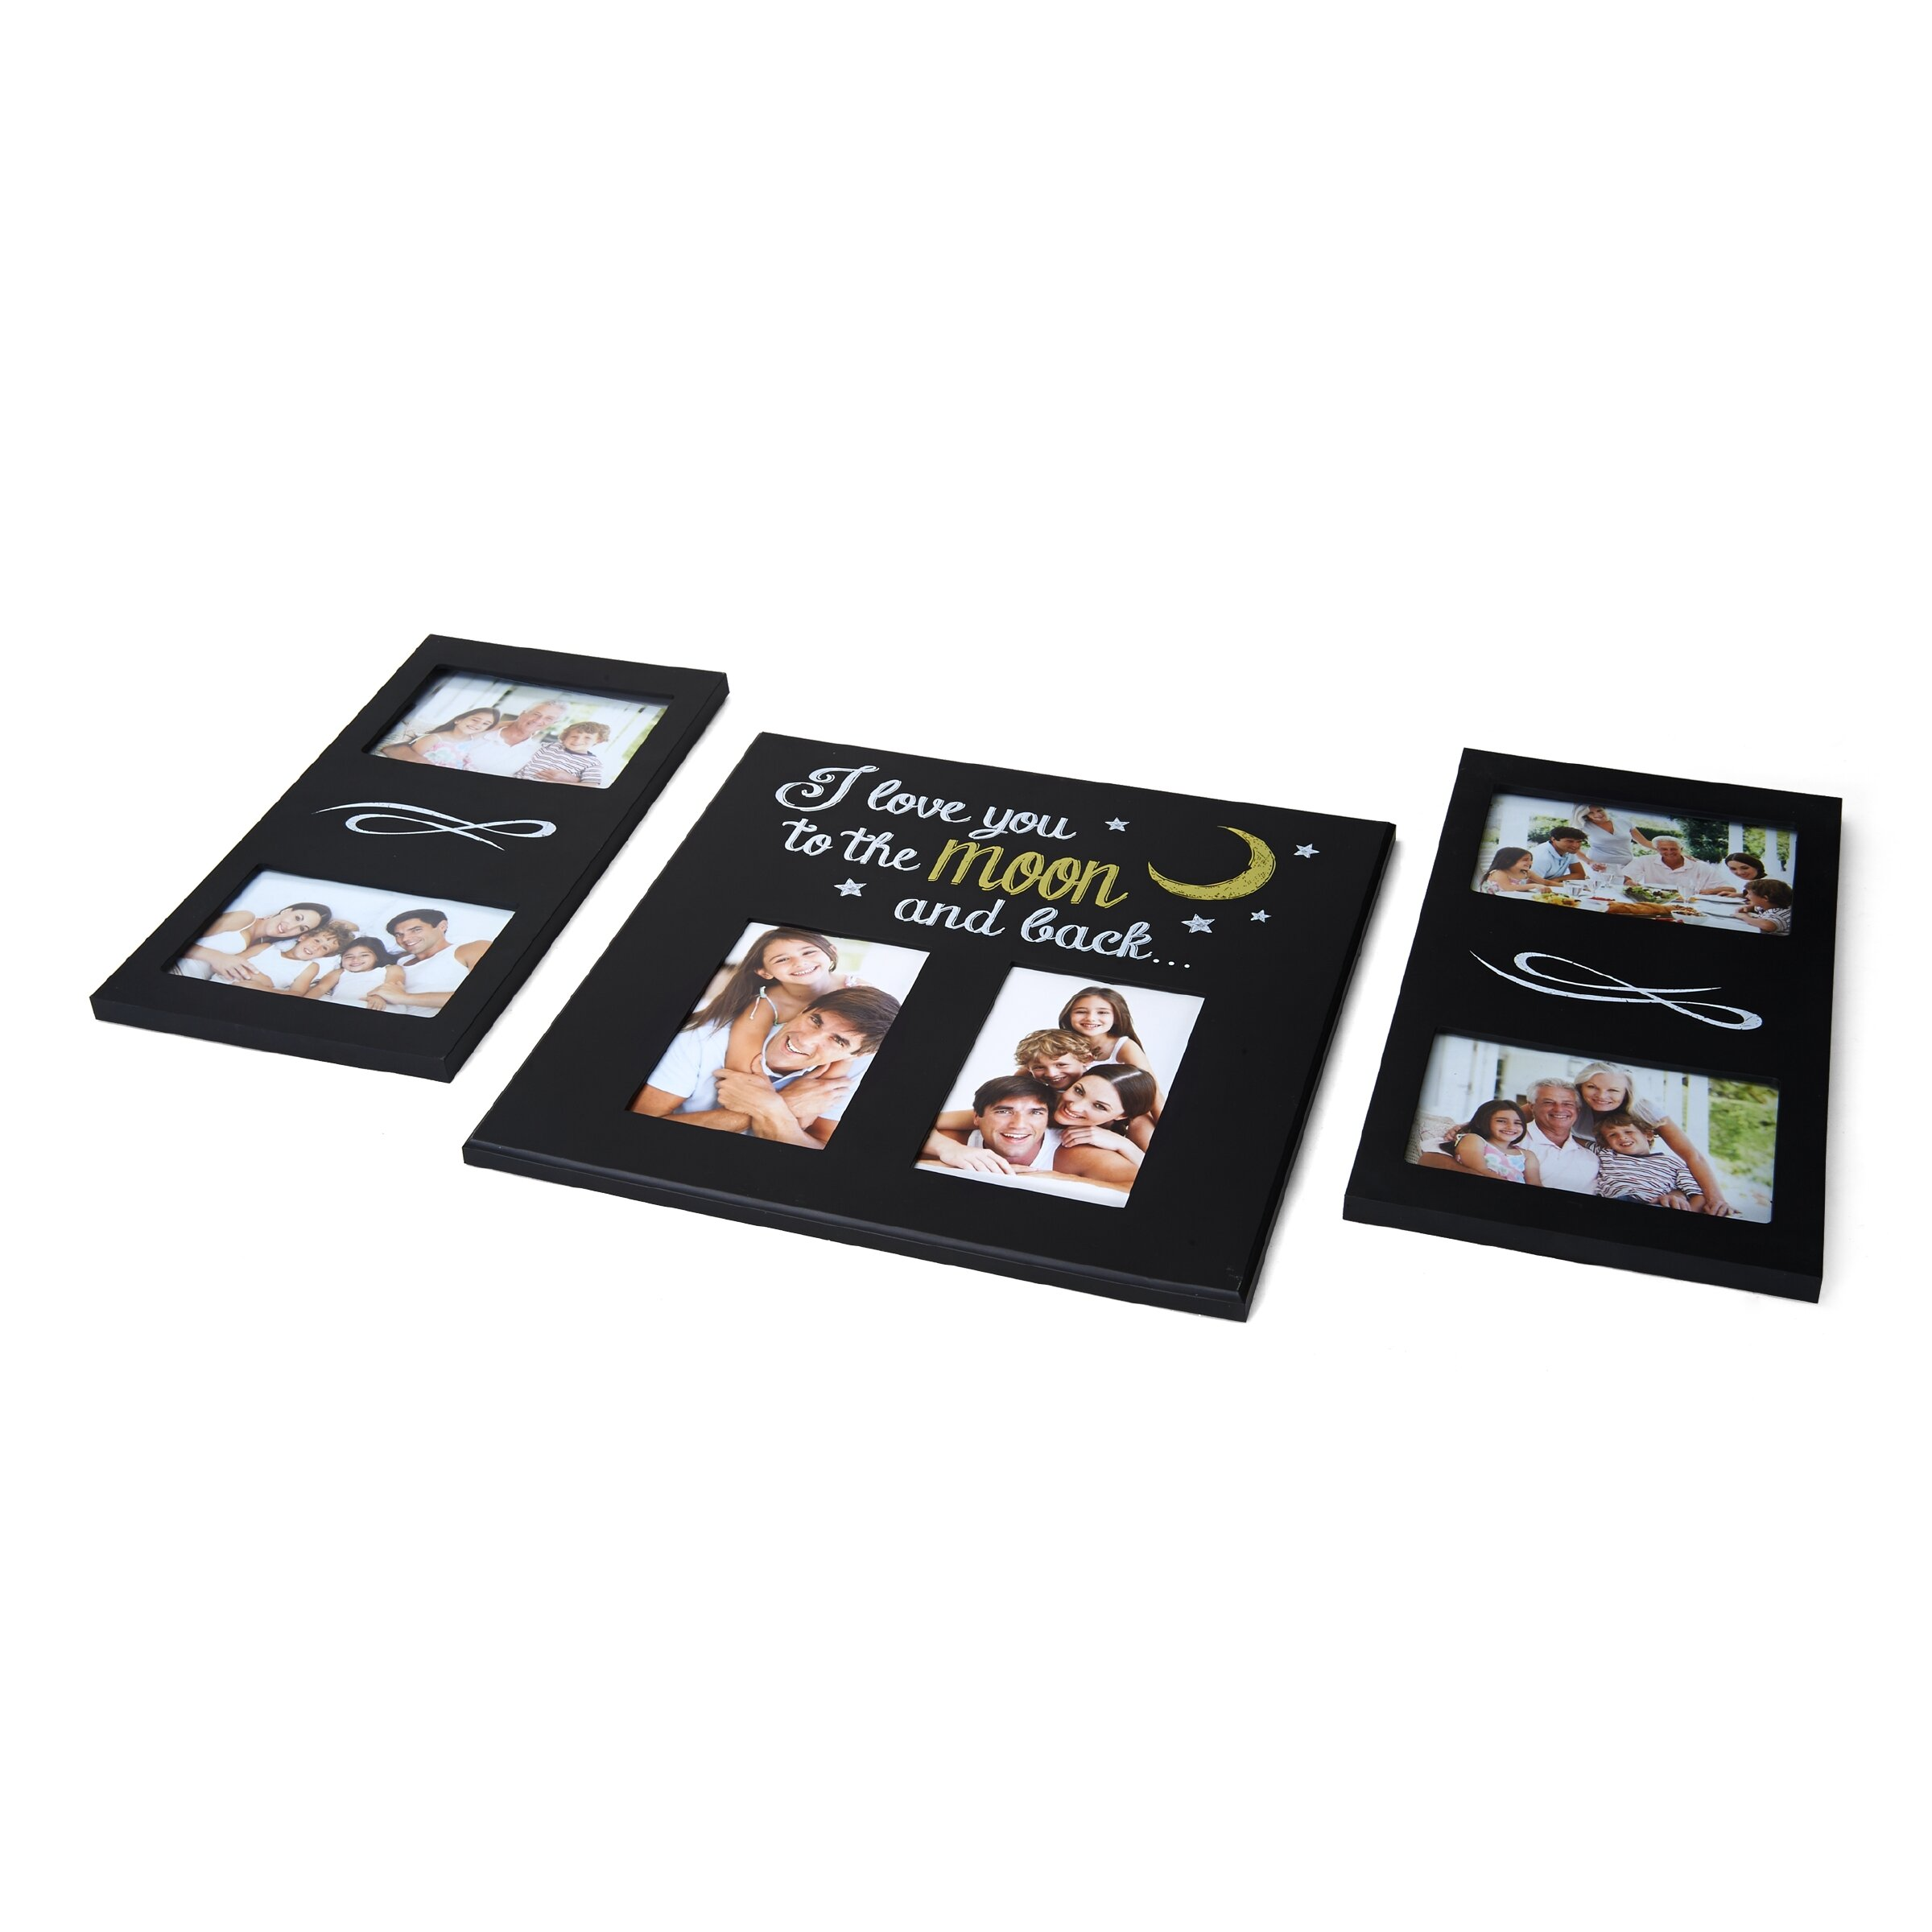 Melannco 3 Piece I Love You To The Moon And Back Picture Frame Set